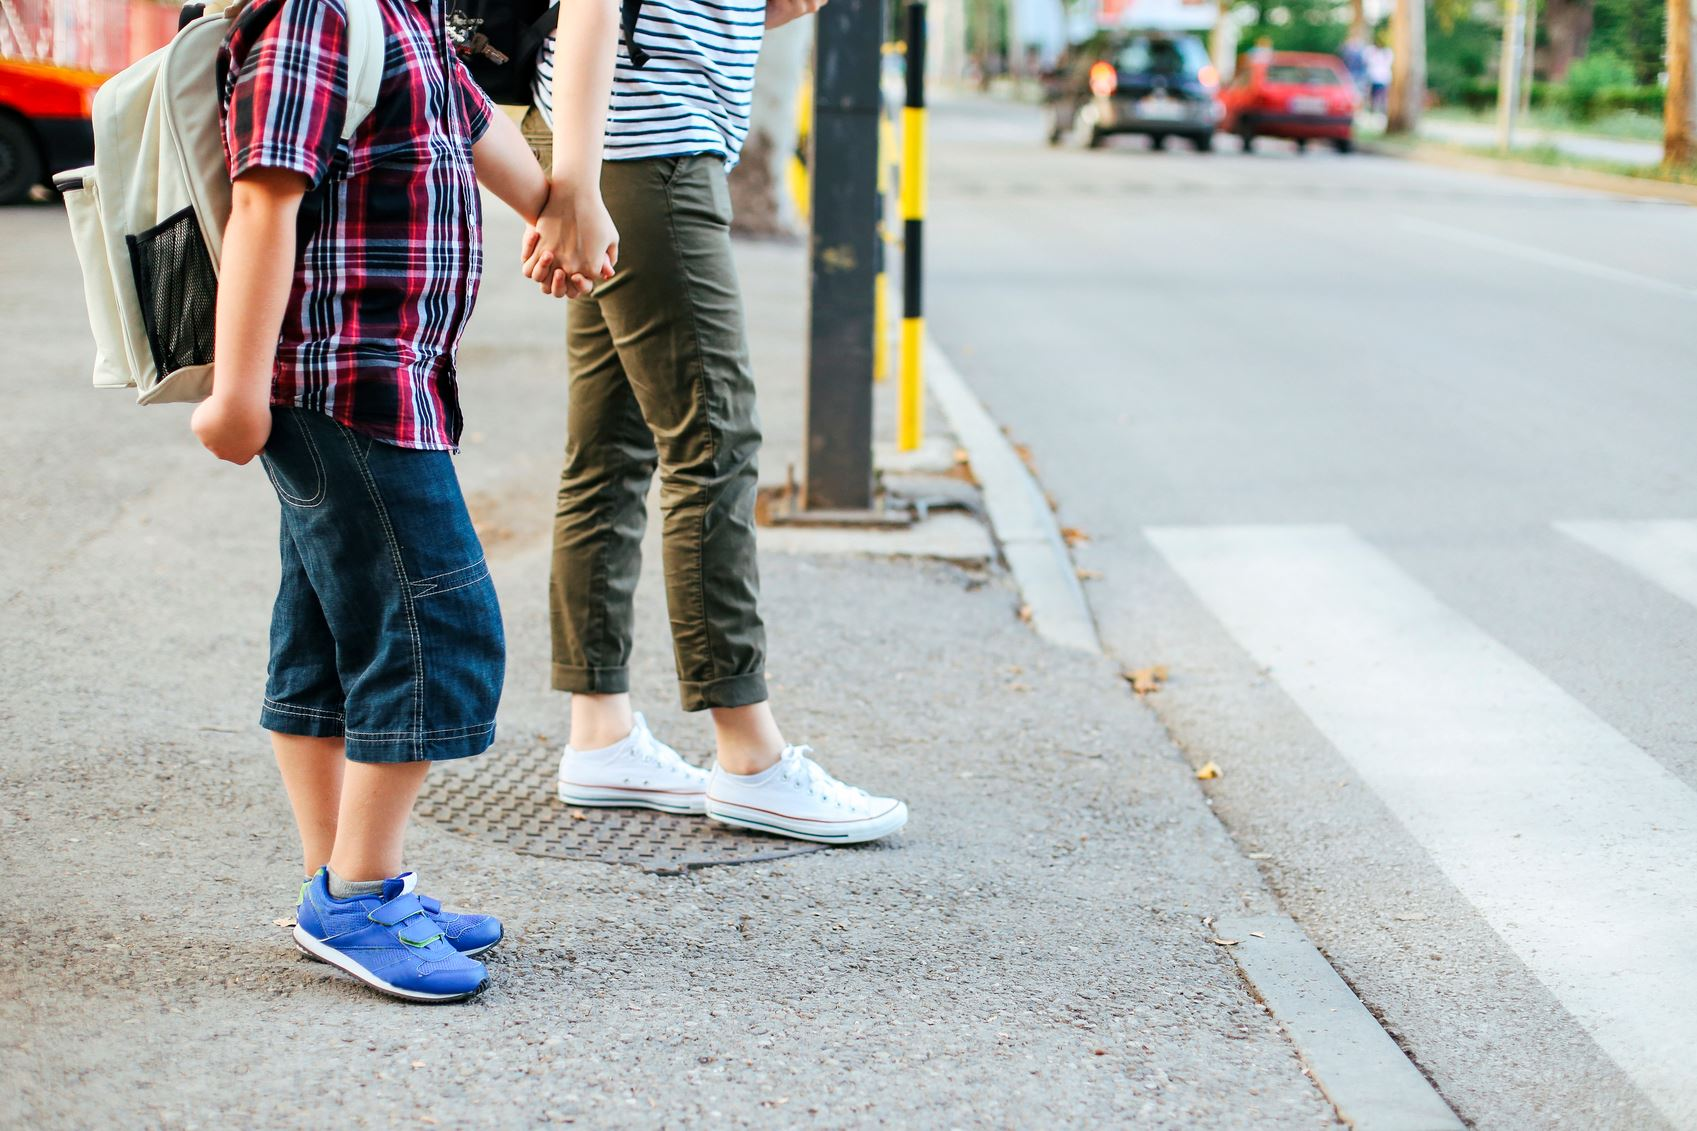 Two children holding hands waiting to cross the street